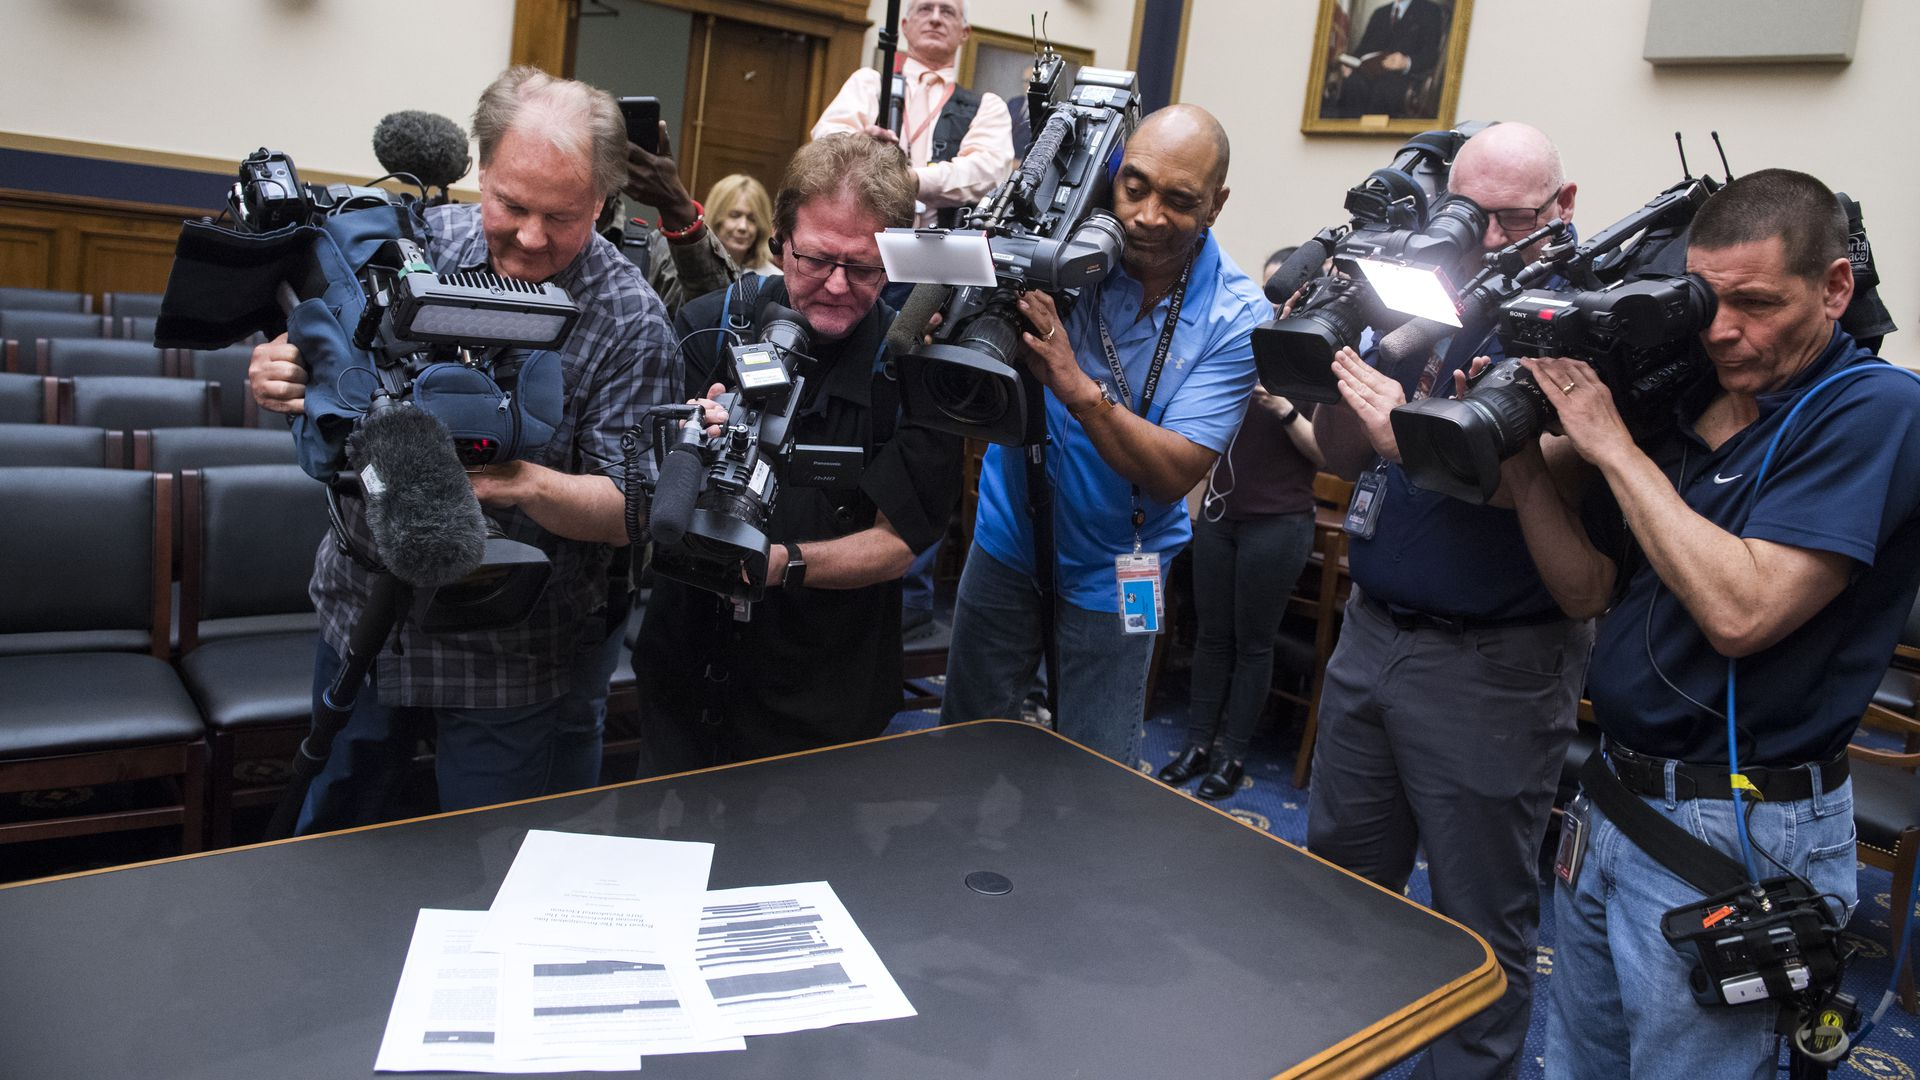 In this image, a crowd of reporters with cameras take pictures of papers in the Mueller report as it sits on a table.